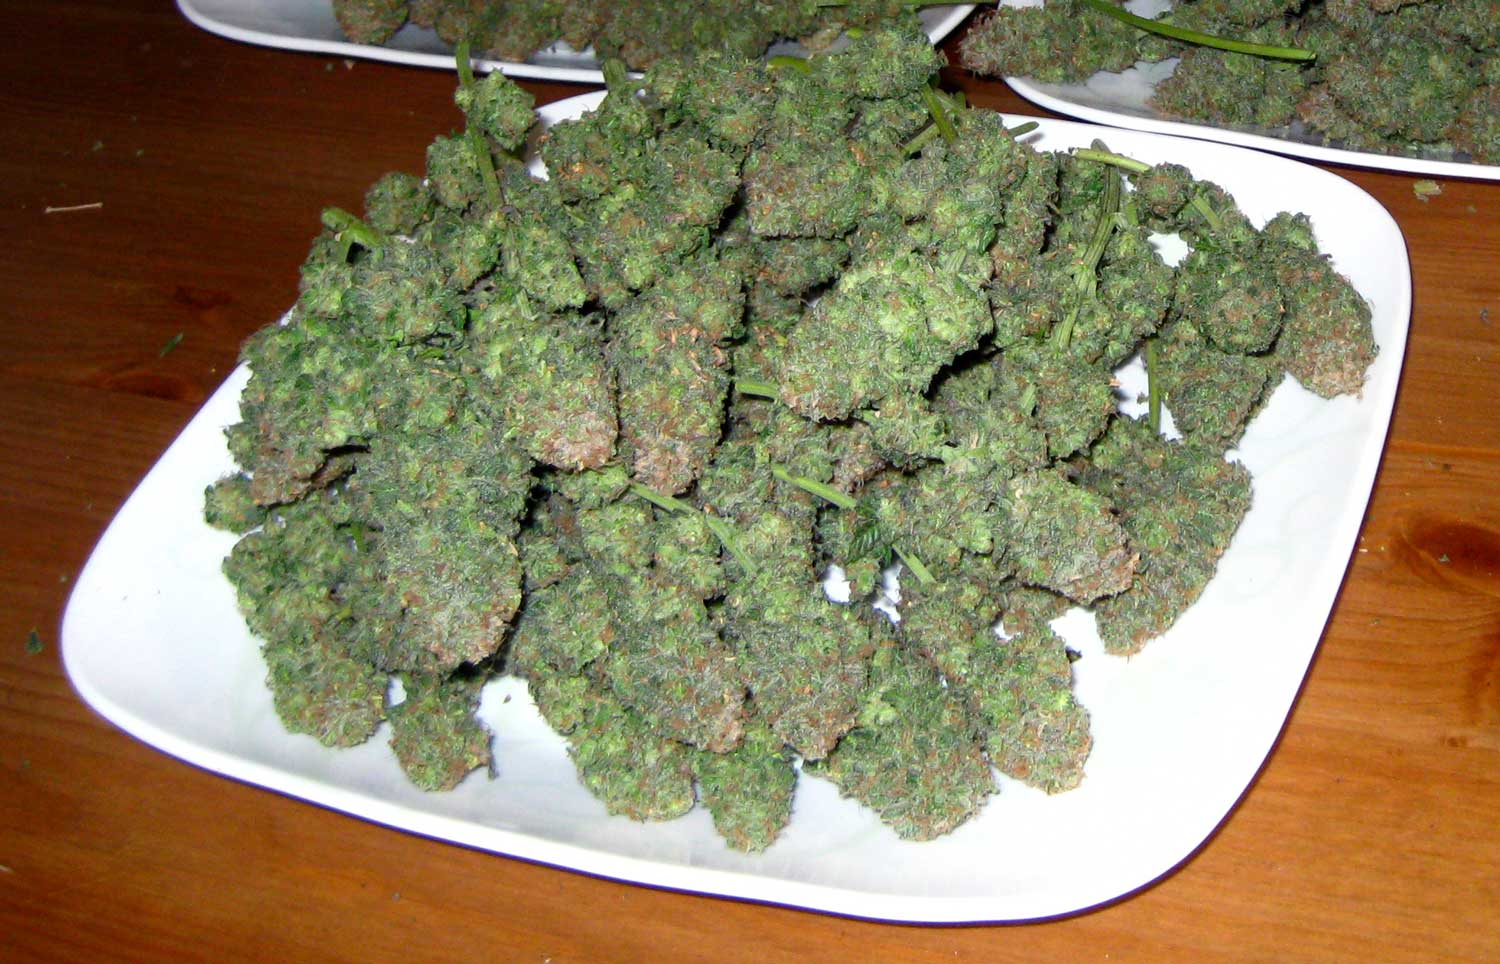 How to grow purple cannabis buds or pink grow weed easy most of the purple was trimmed away because the majority of purple came from the leaves nvjuhfo Image collections